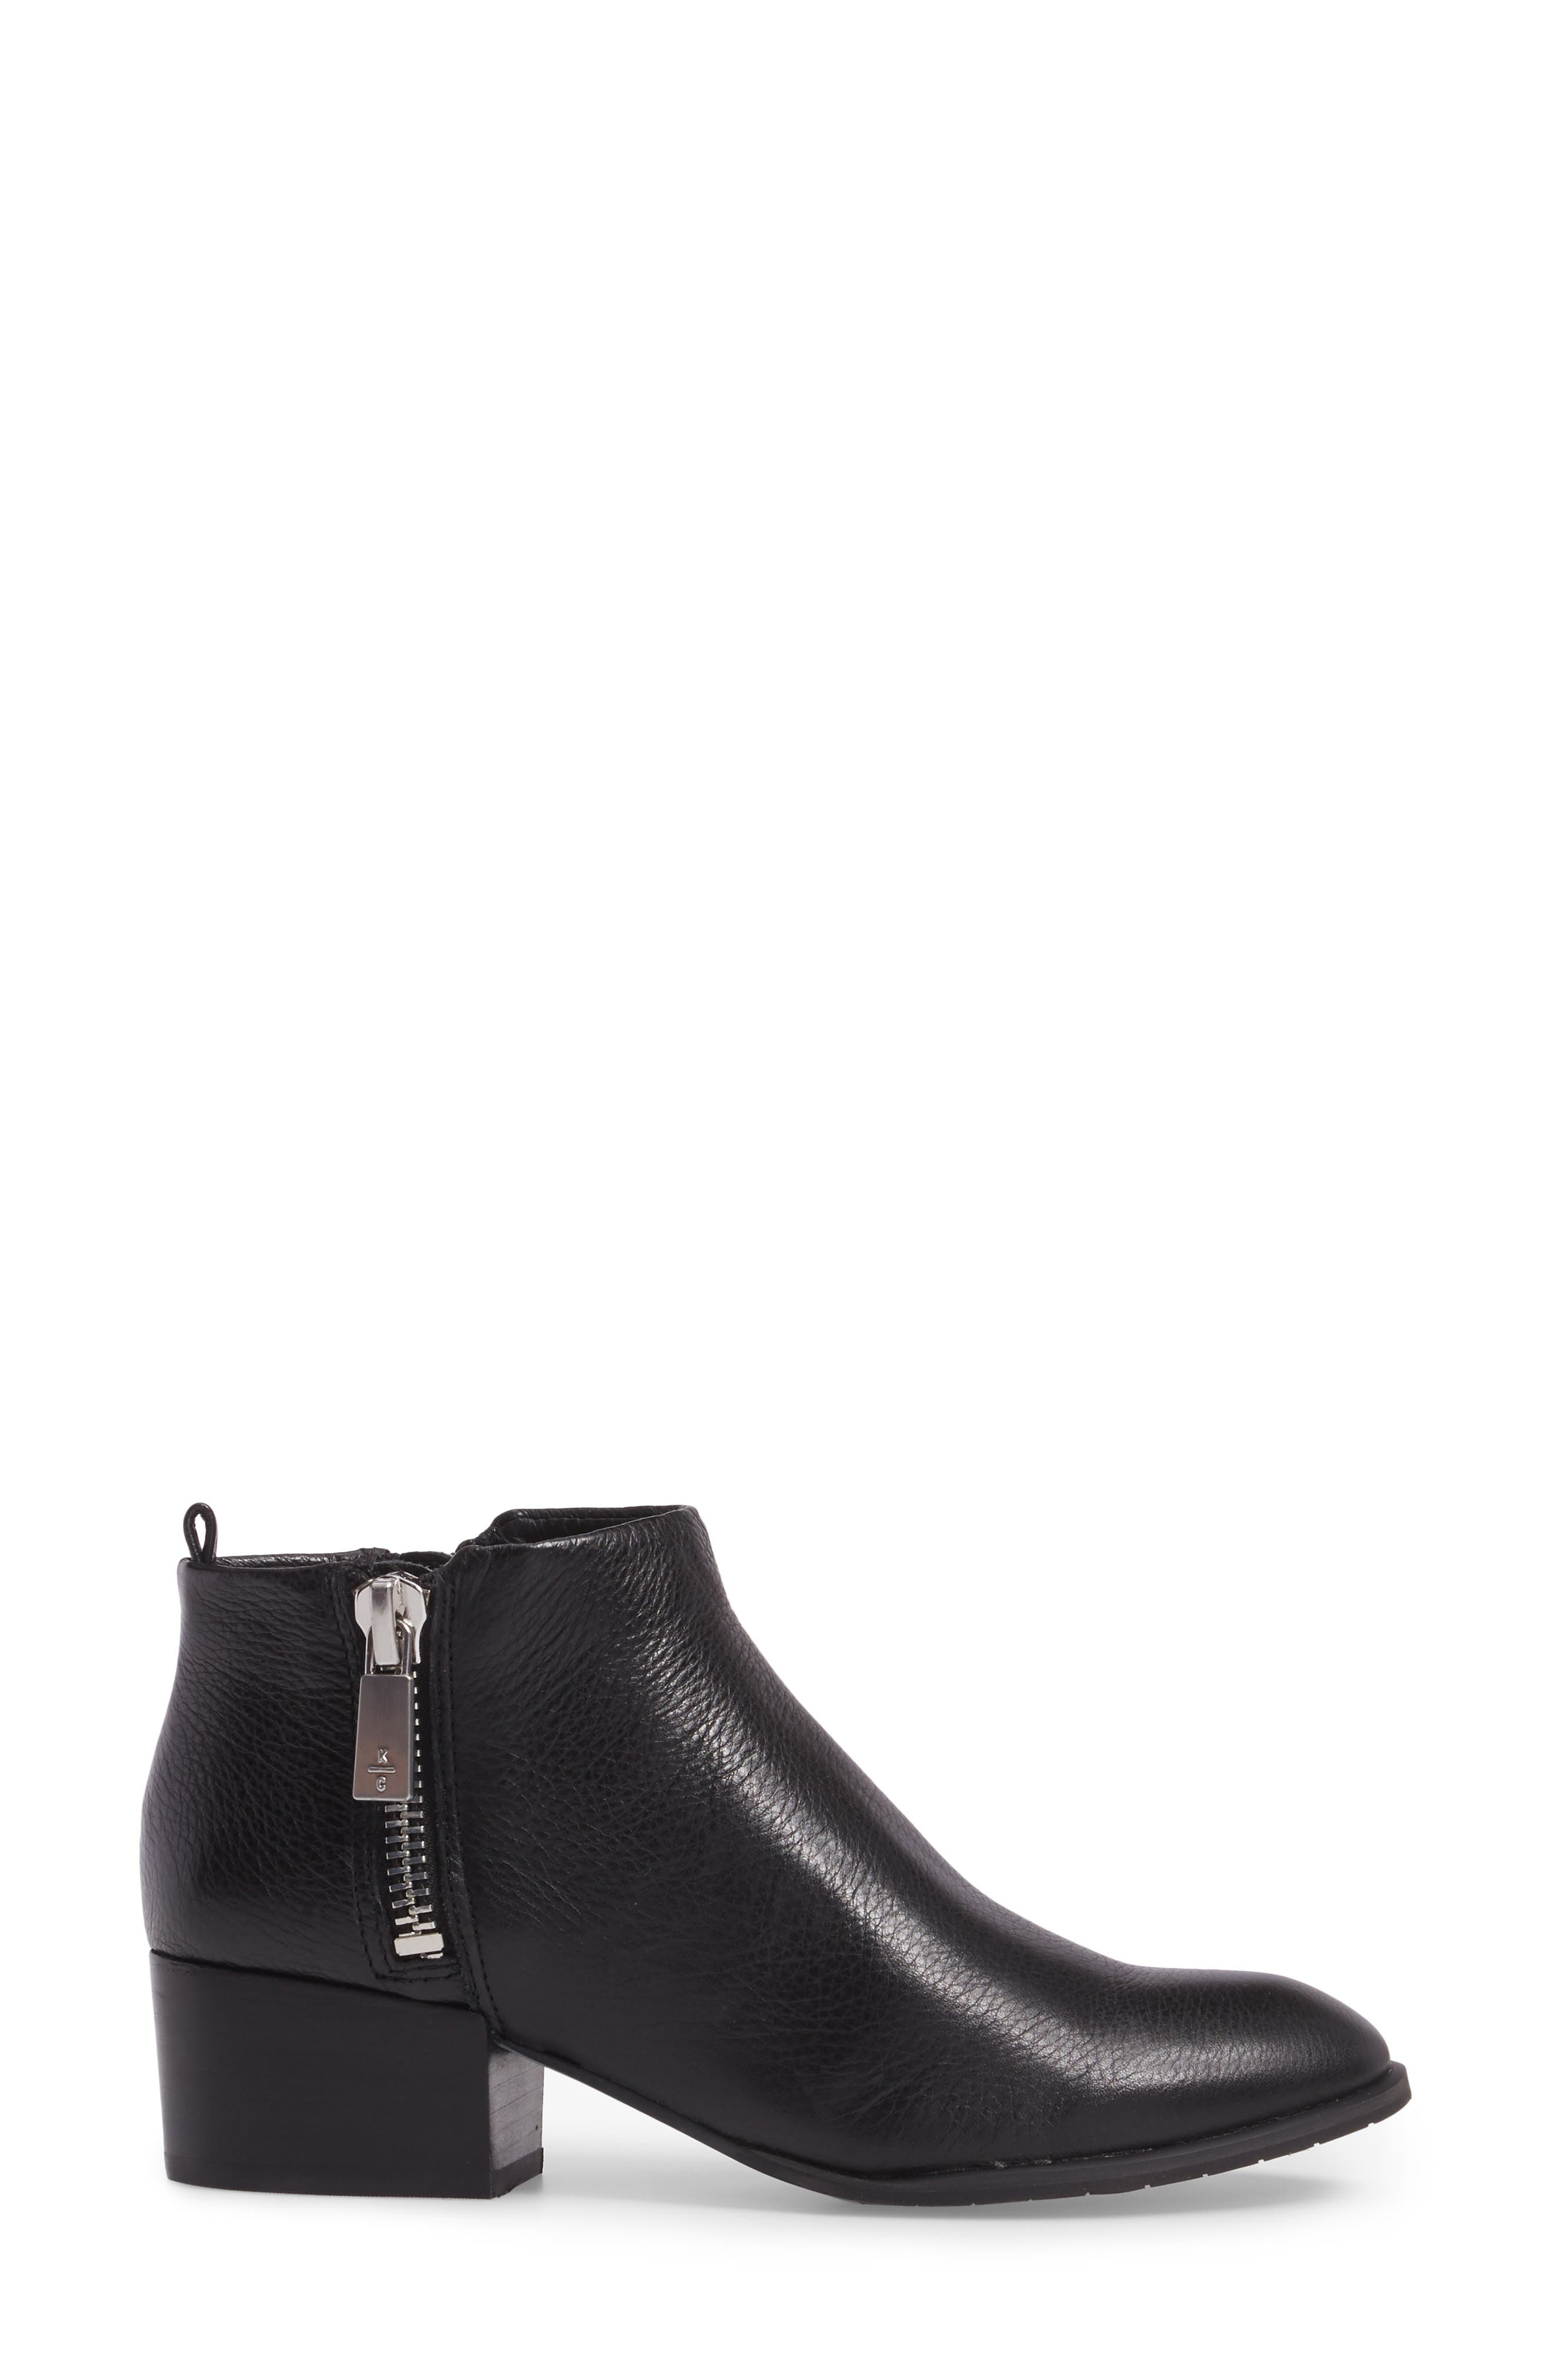 KENNETH COLE NEW YORK, Addy Bootie, Alternate thumbnail 3, color, 001